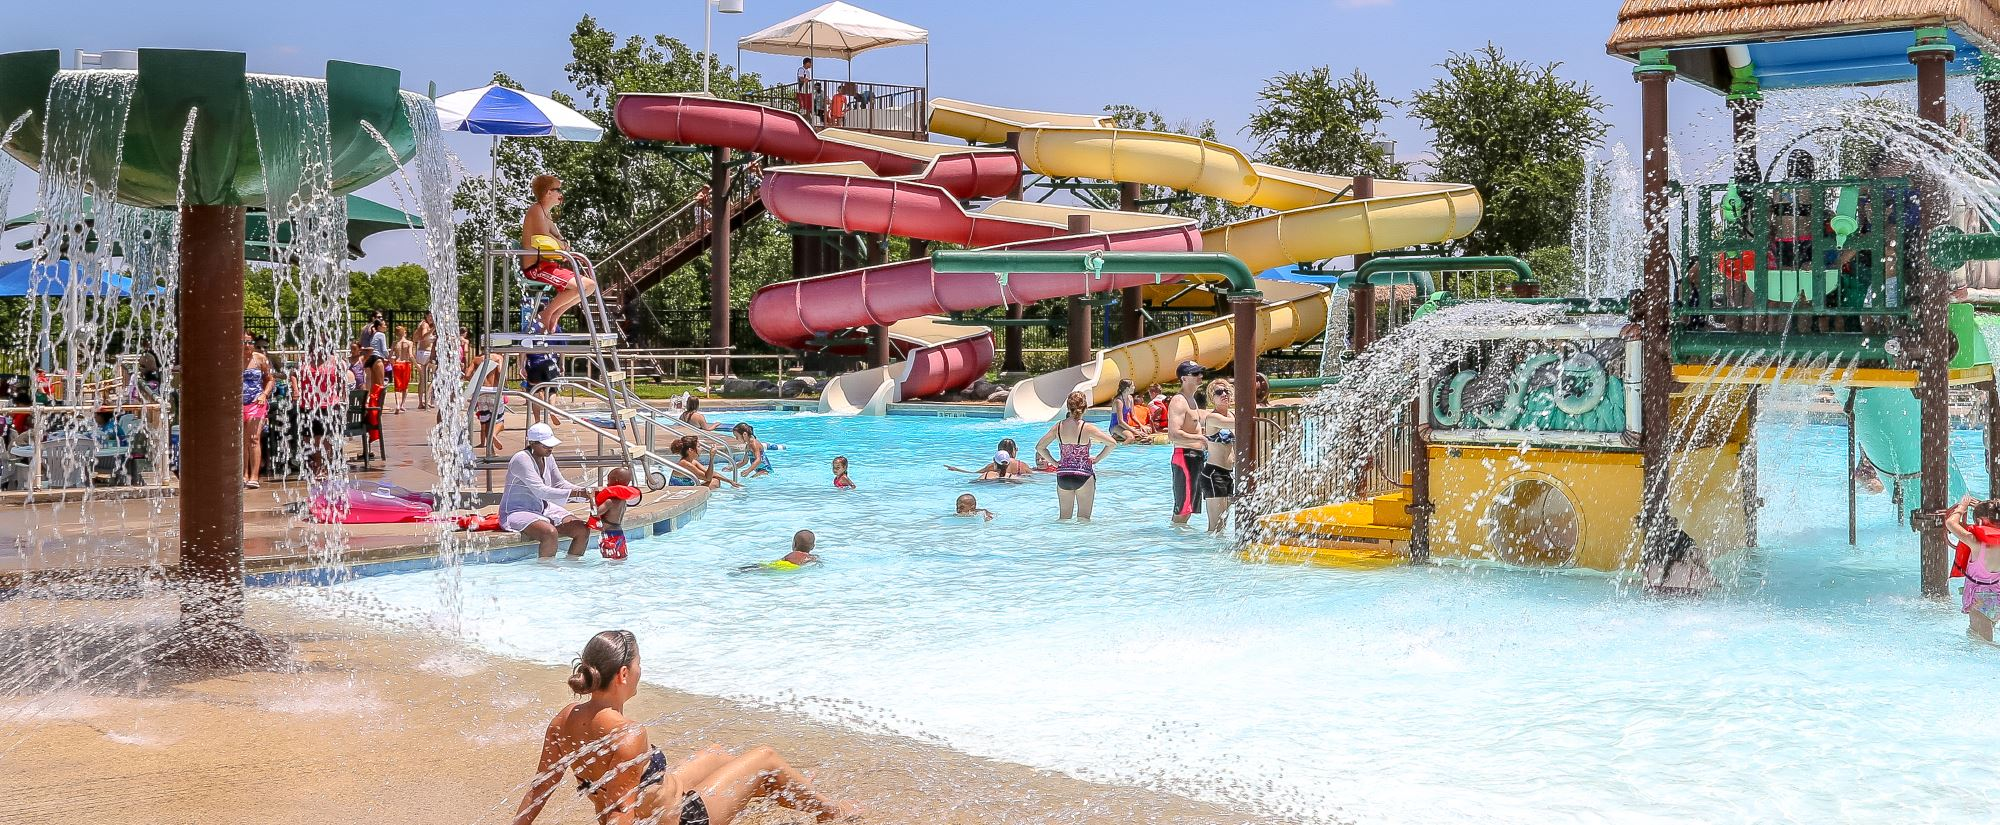 Children enjoying the Wet Zone Waterpark